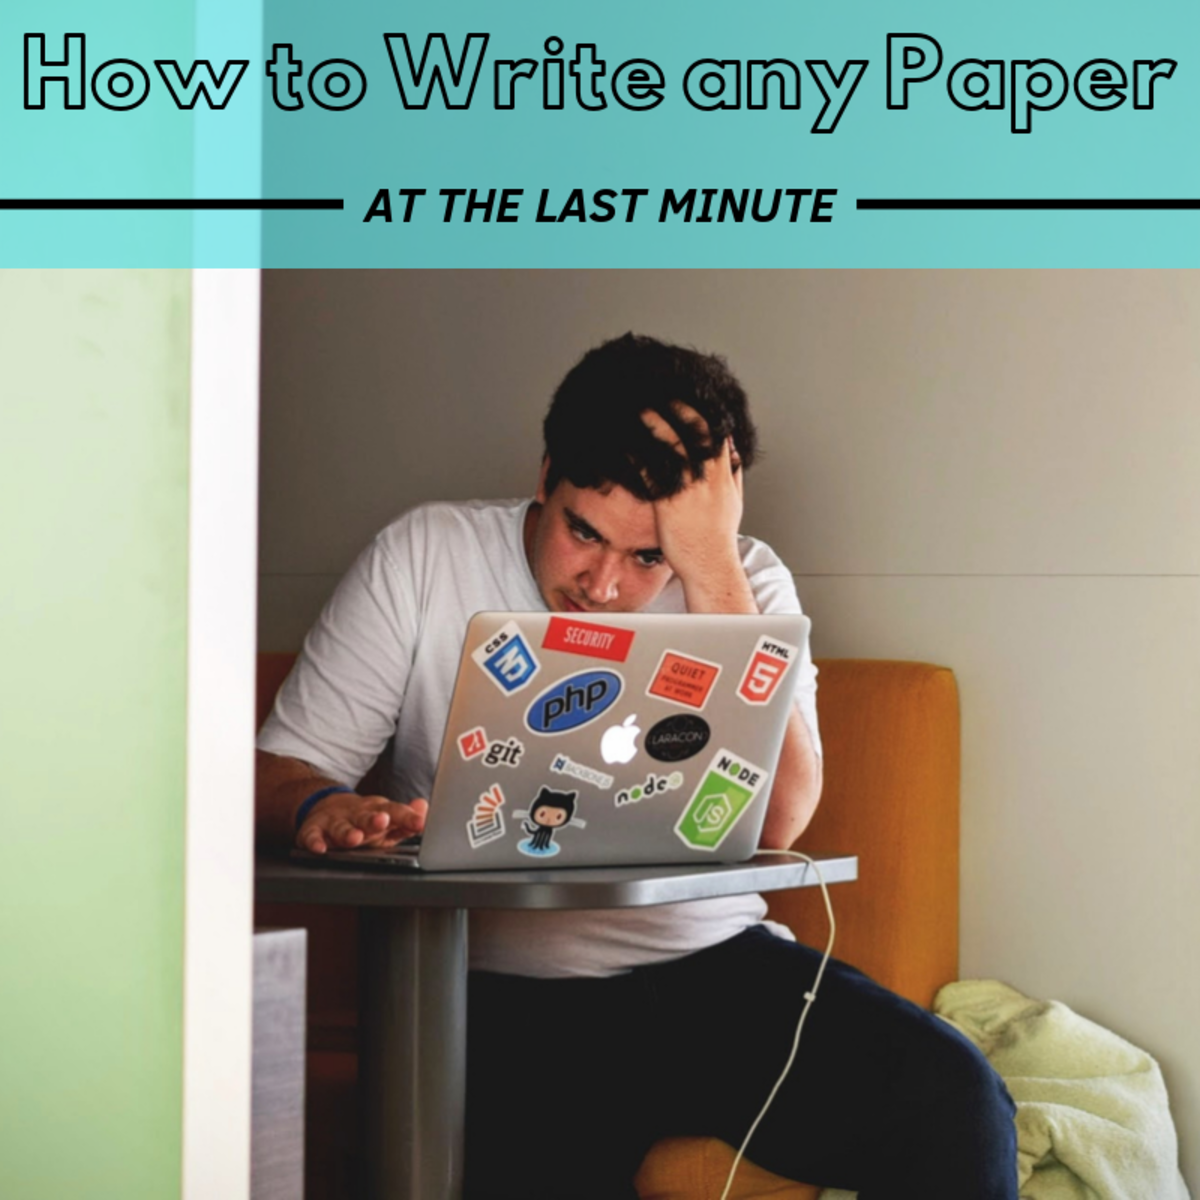 Writing a major paper the night before it's due can seem like an impossible task, but if you manage your time and follow a formula, you can get it done!